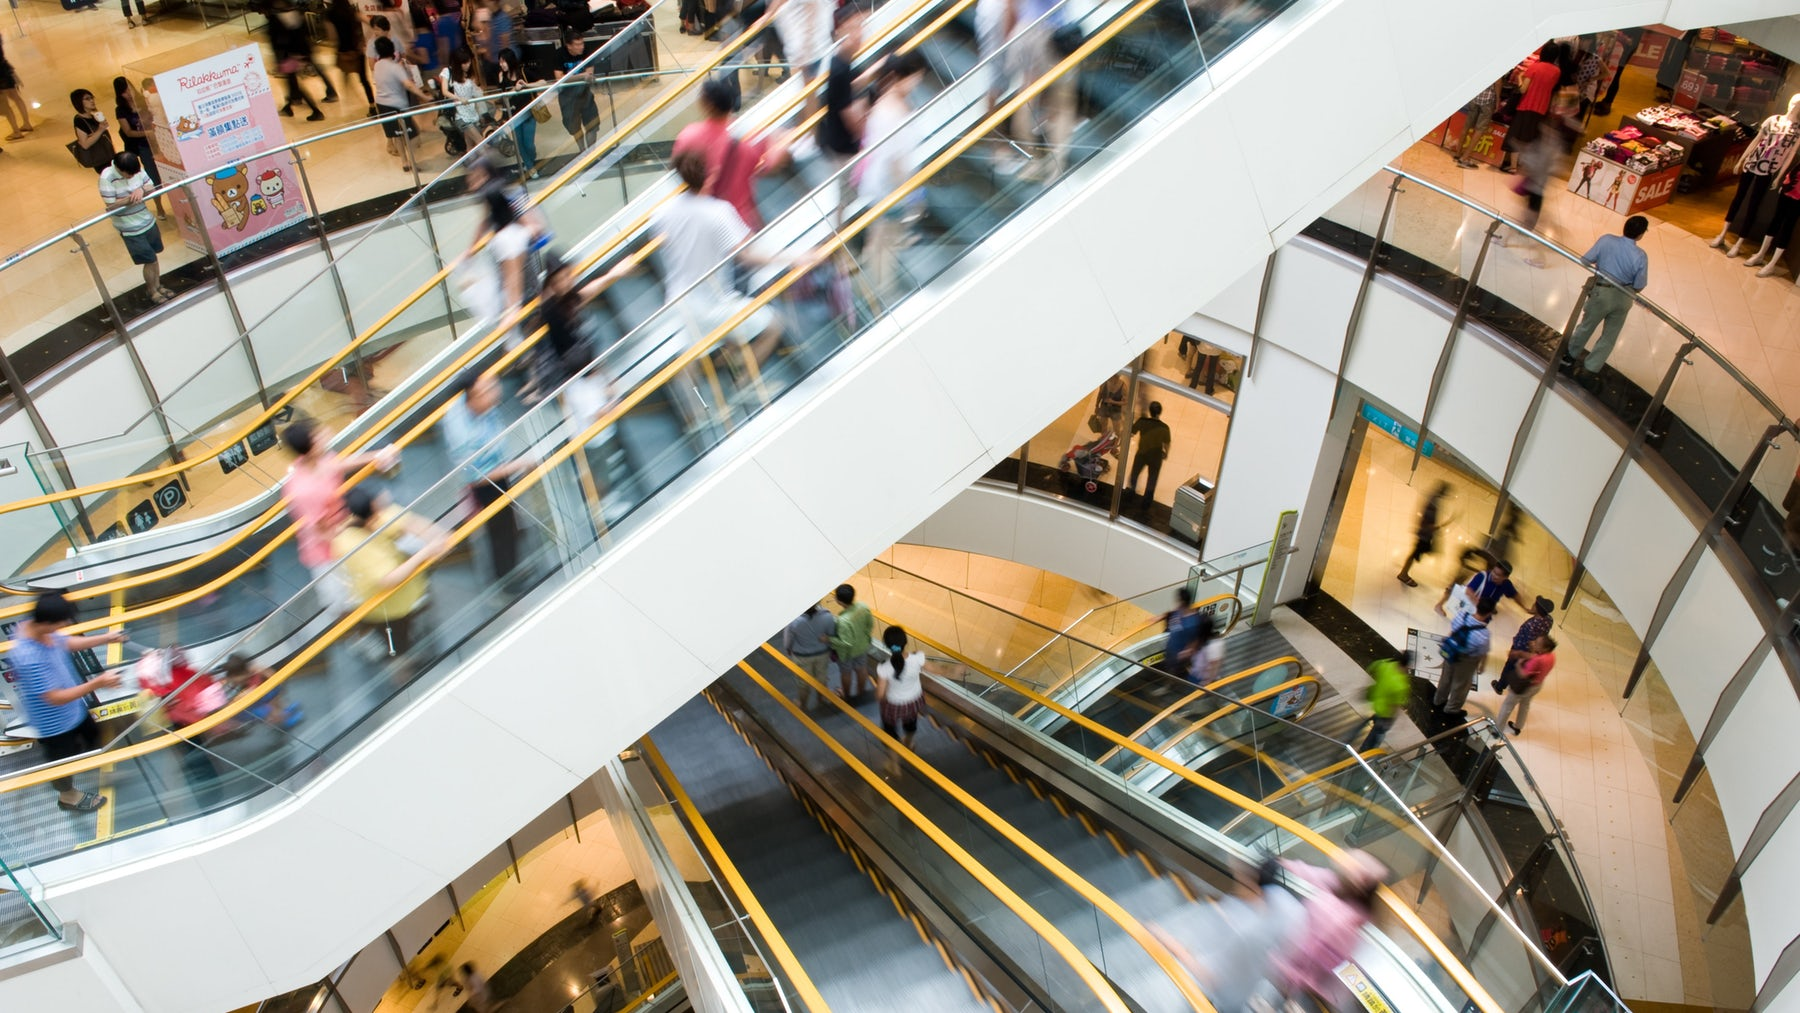 Malls Take Another Beating as Retailers Cull Over 300 Stores